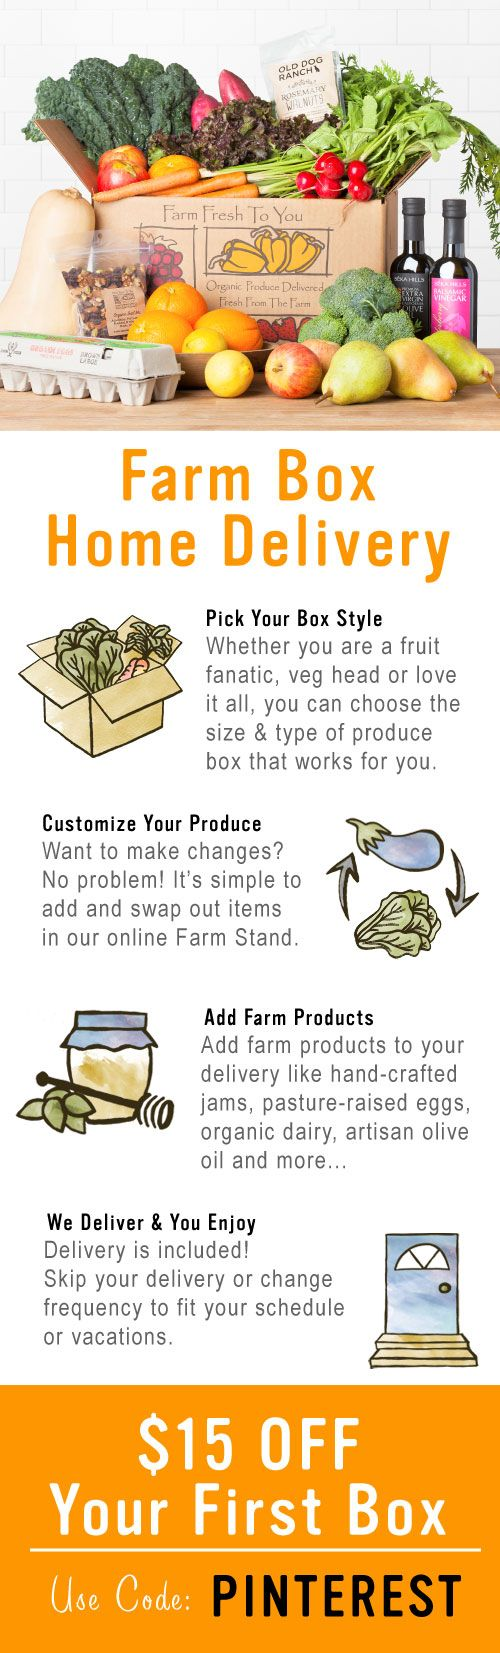 Organic Produce Conveniently Delivered Every Week! Easy to customize each box. Get $15 Off Your First Box With Code: PINTEREST